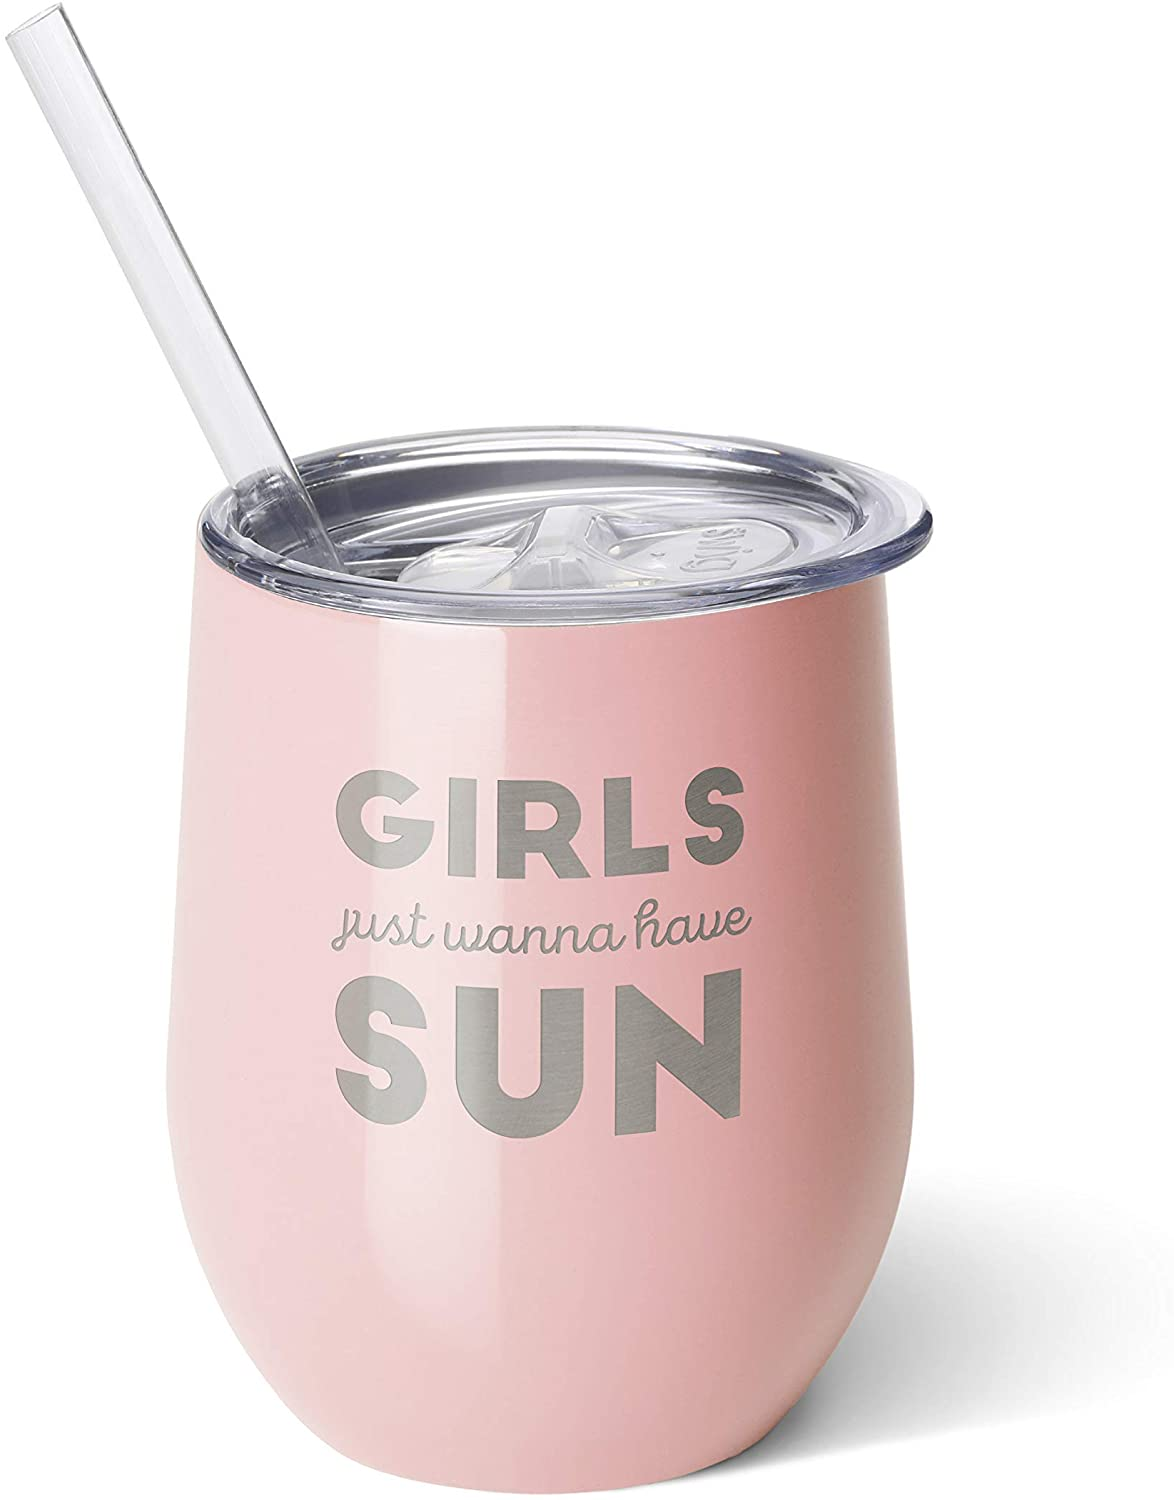 Swig Life Stainless Steel Insulated 12oz Stemless Wine Cup with Slider Lid and Straw - Girls Just Want to Have Sun (Pink)